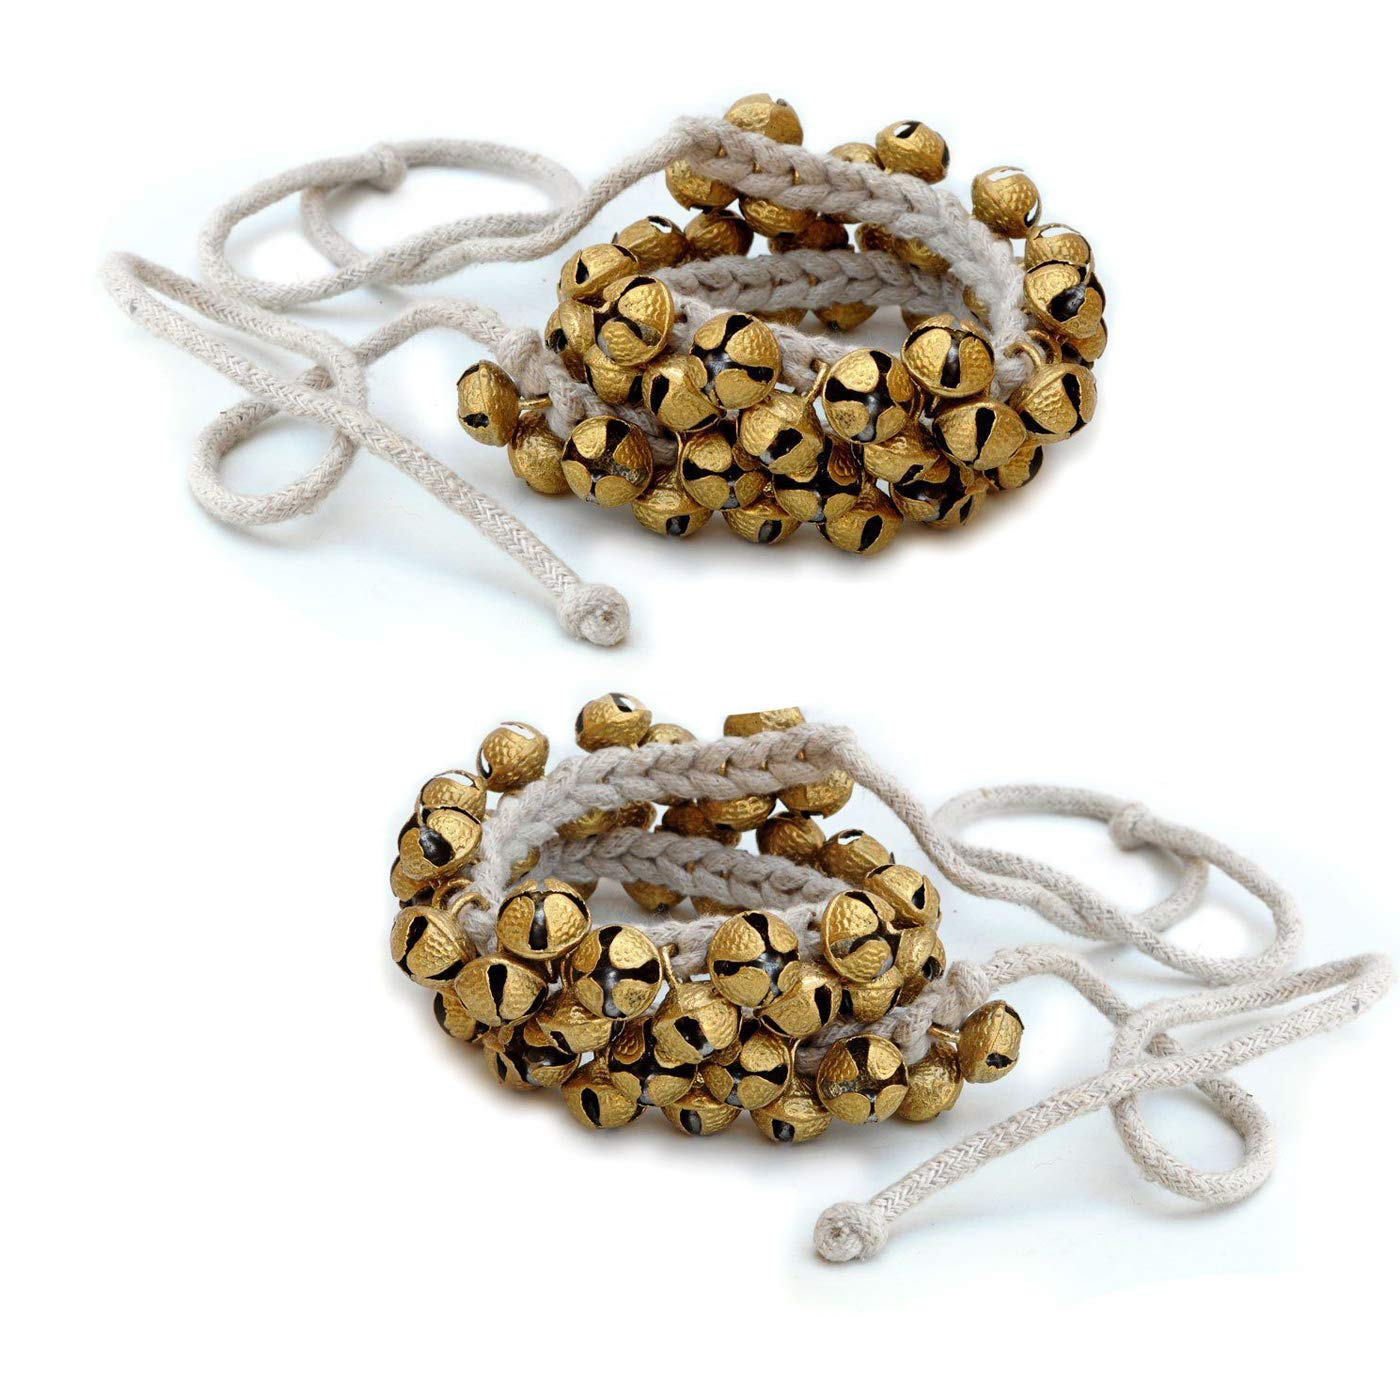 Prisha India Craft ® Kathak Ghungroo Pair, (50+50) (16 No. Ghungroo) Big Bells Best quality Tied with CottonCord Indian Classical Dancers Anklet Musical Instrument by Prisha India Craft